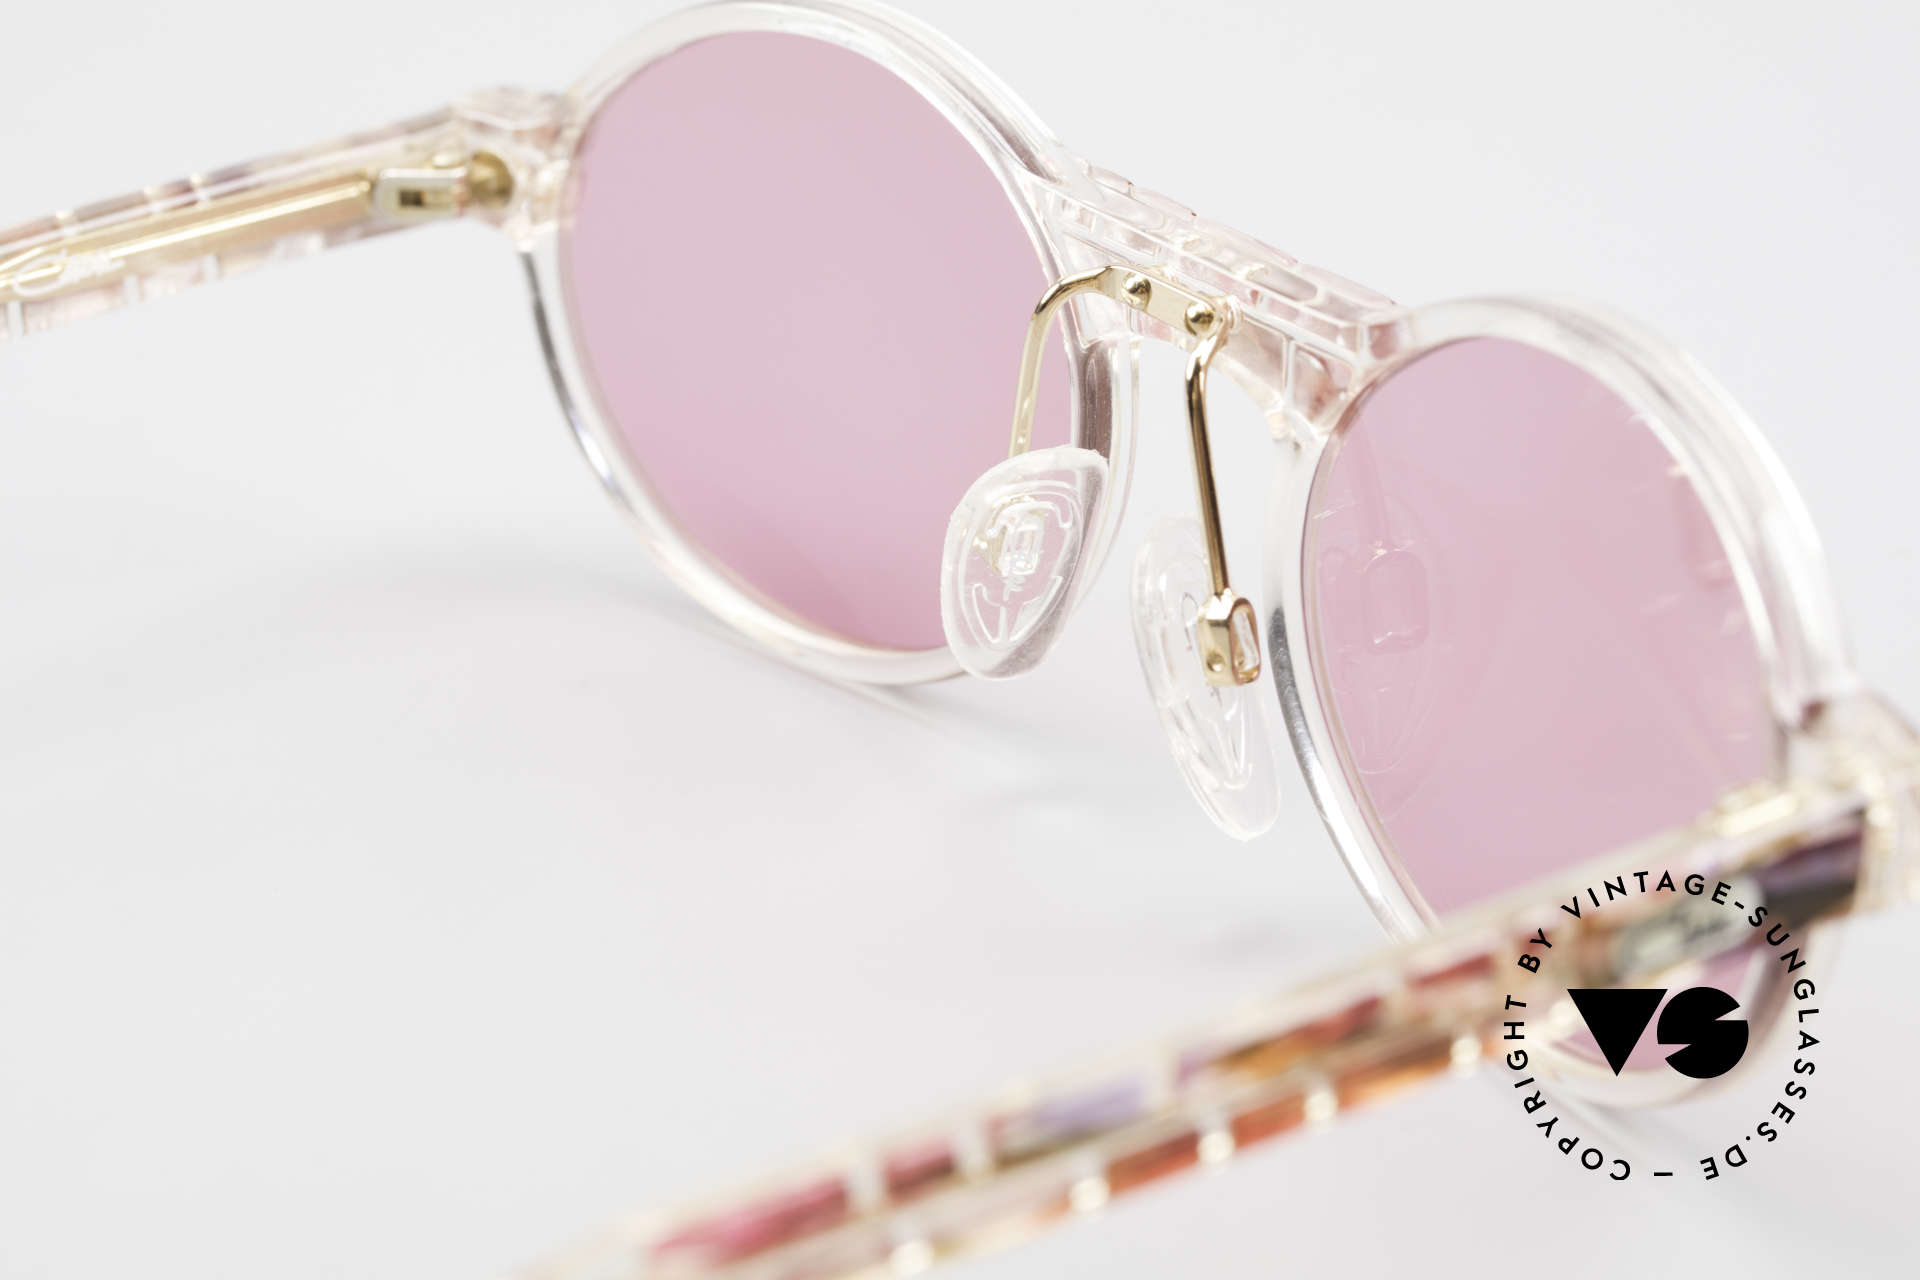 Cazal 510 Oval Pink Vintage Sunglasses, unworn (like all our rare vintage Cazal Crystal frames), Made for Women